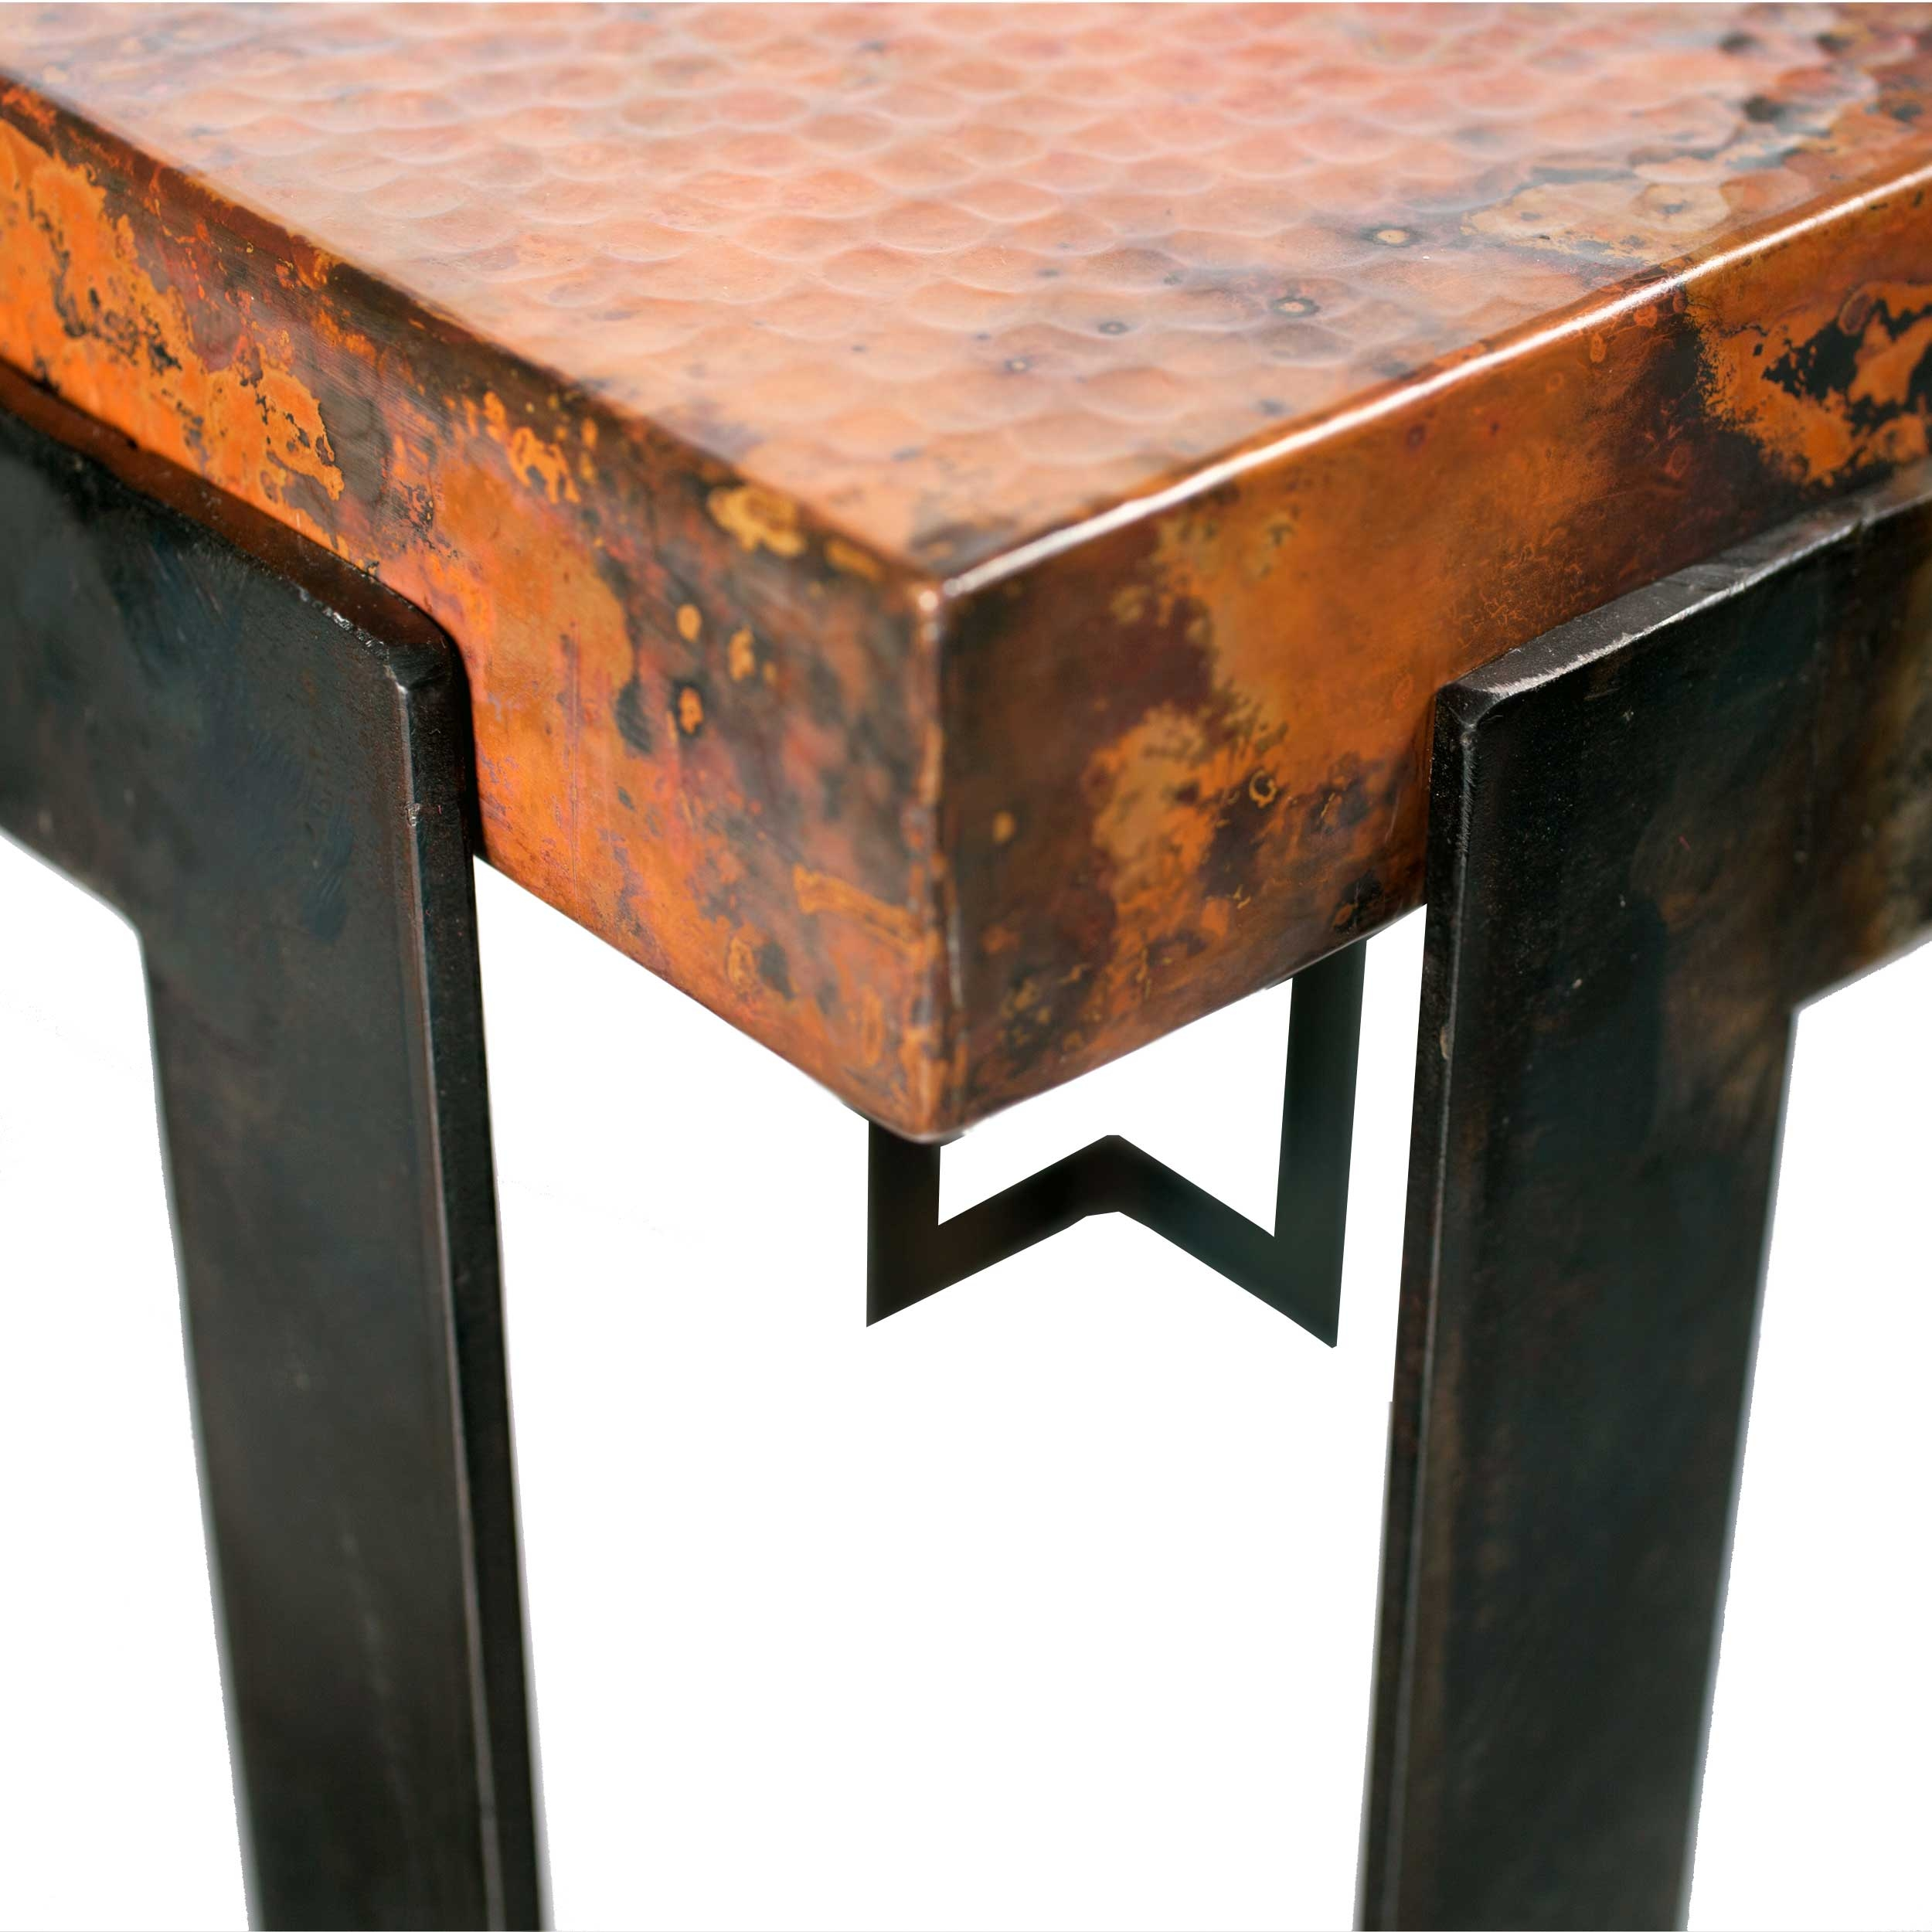 Steel Strap Rectangle Dining Table with Copper Top